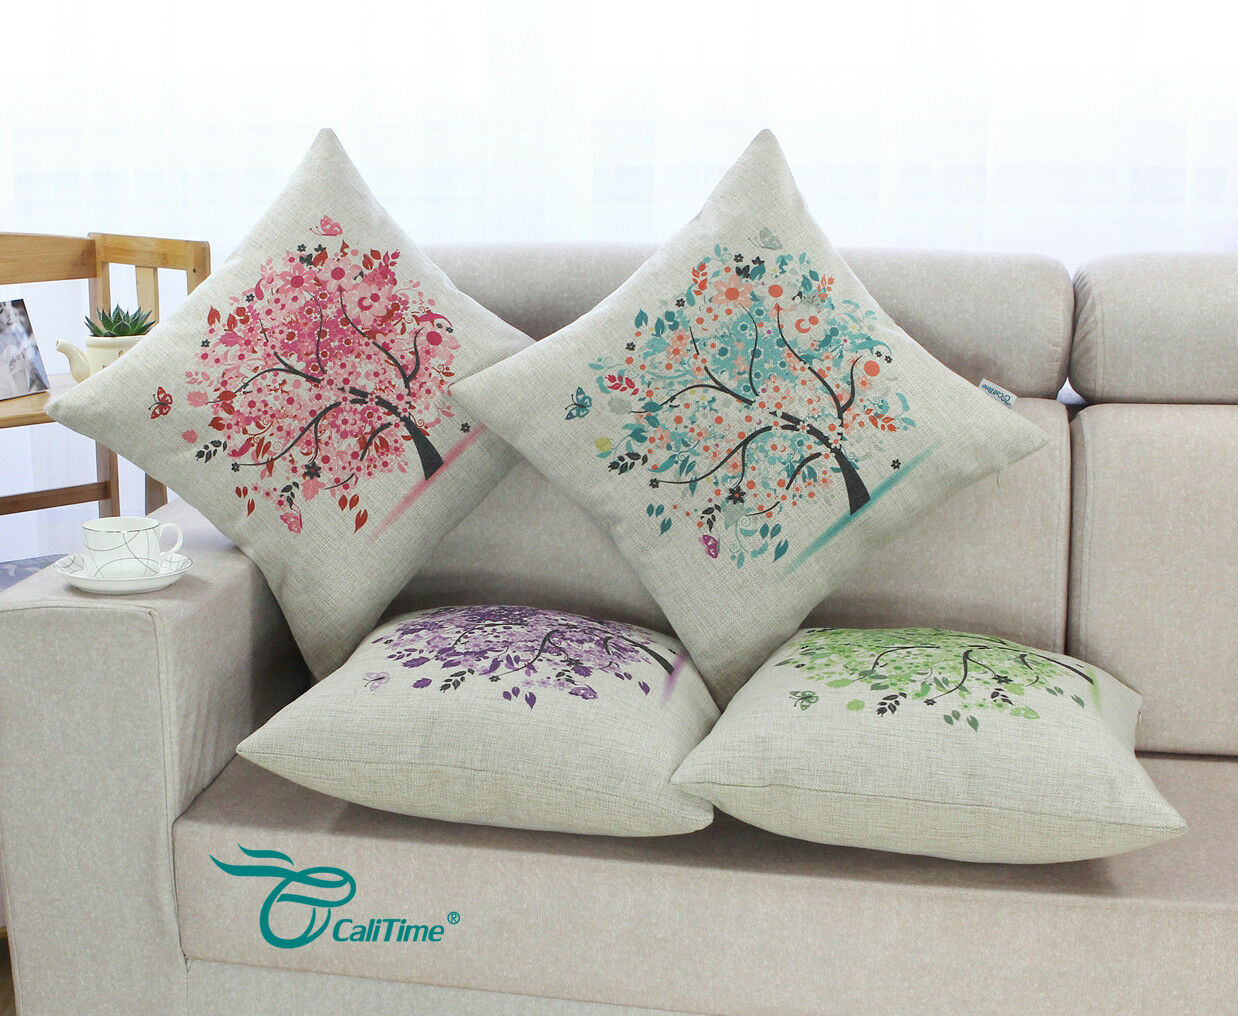 CaliTime Square Throw Cushion Pillows Covers Shells Home Sof